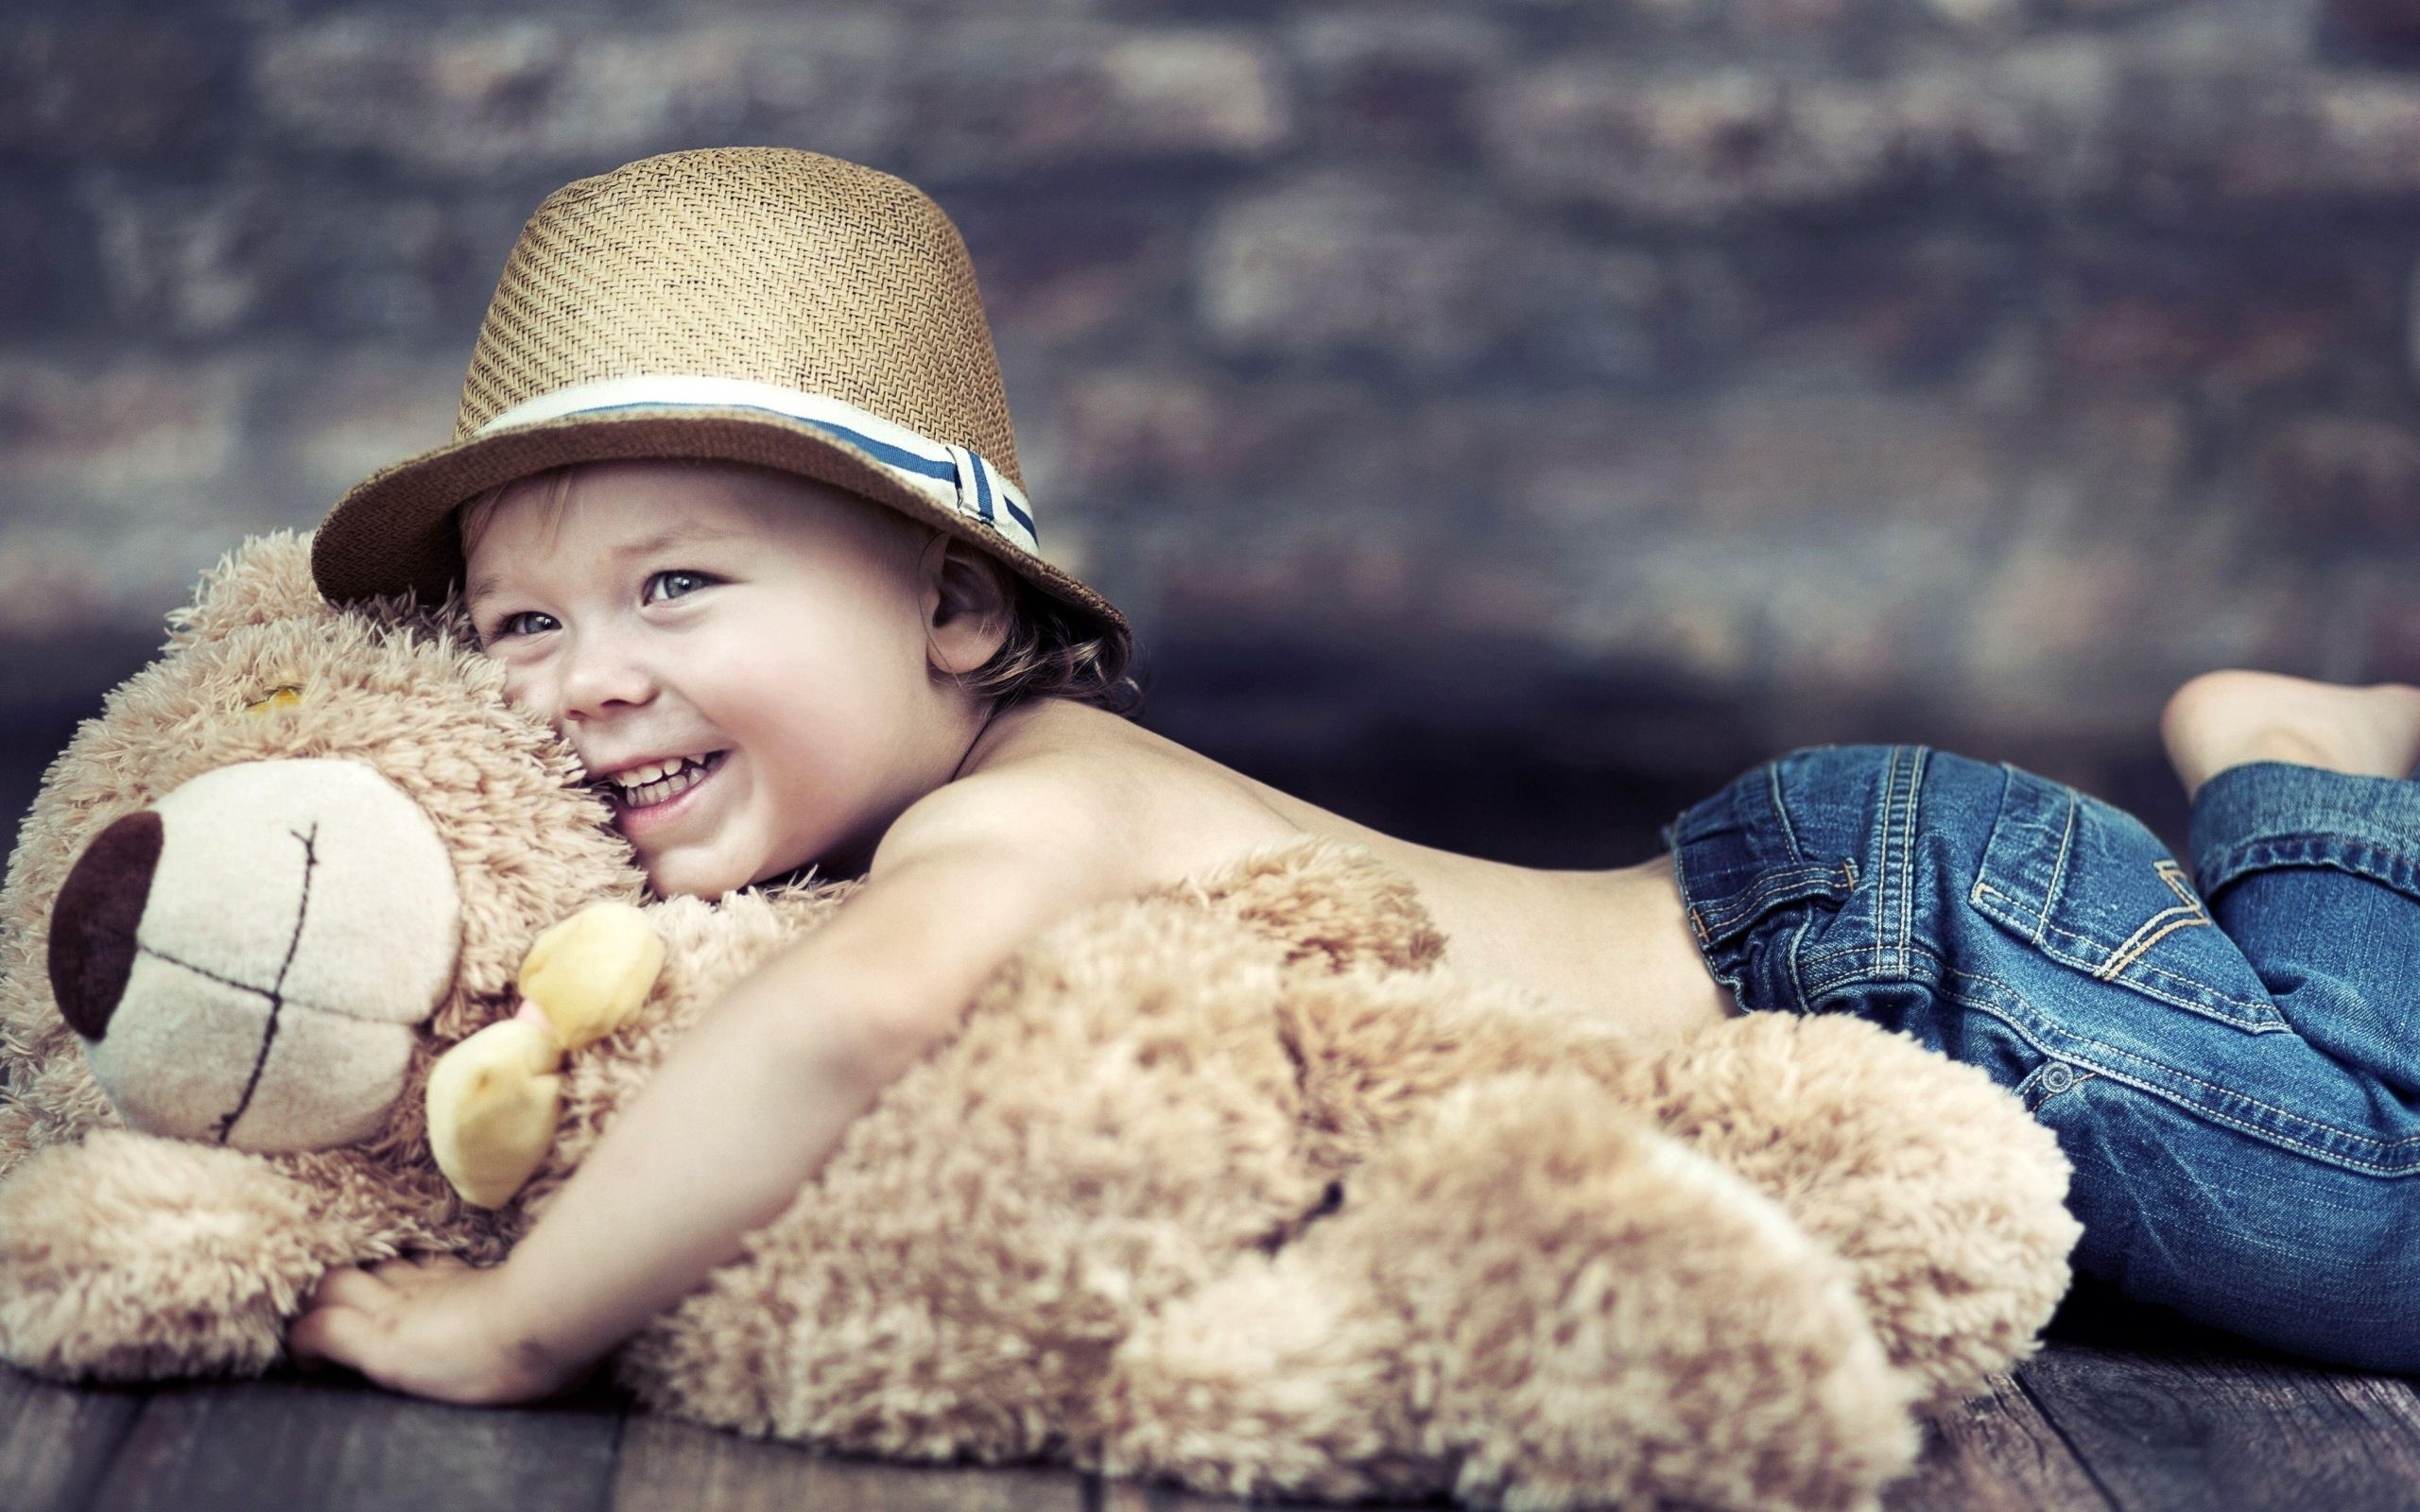 A Smiling Baby With Teddy Bear   Photography HD Wallpaper